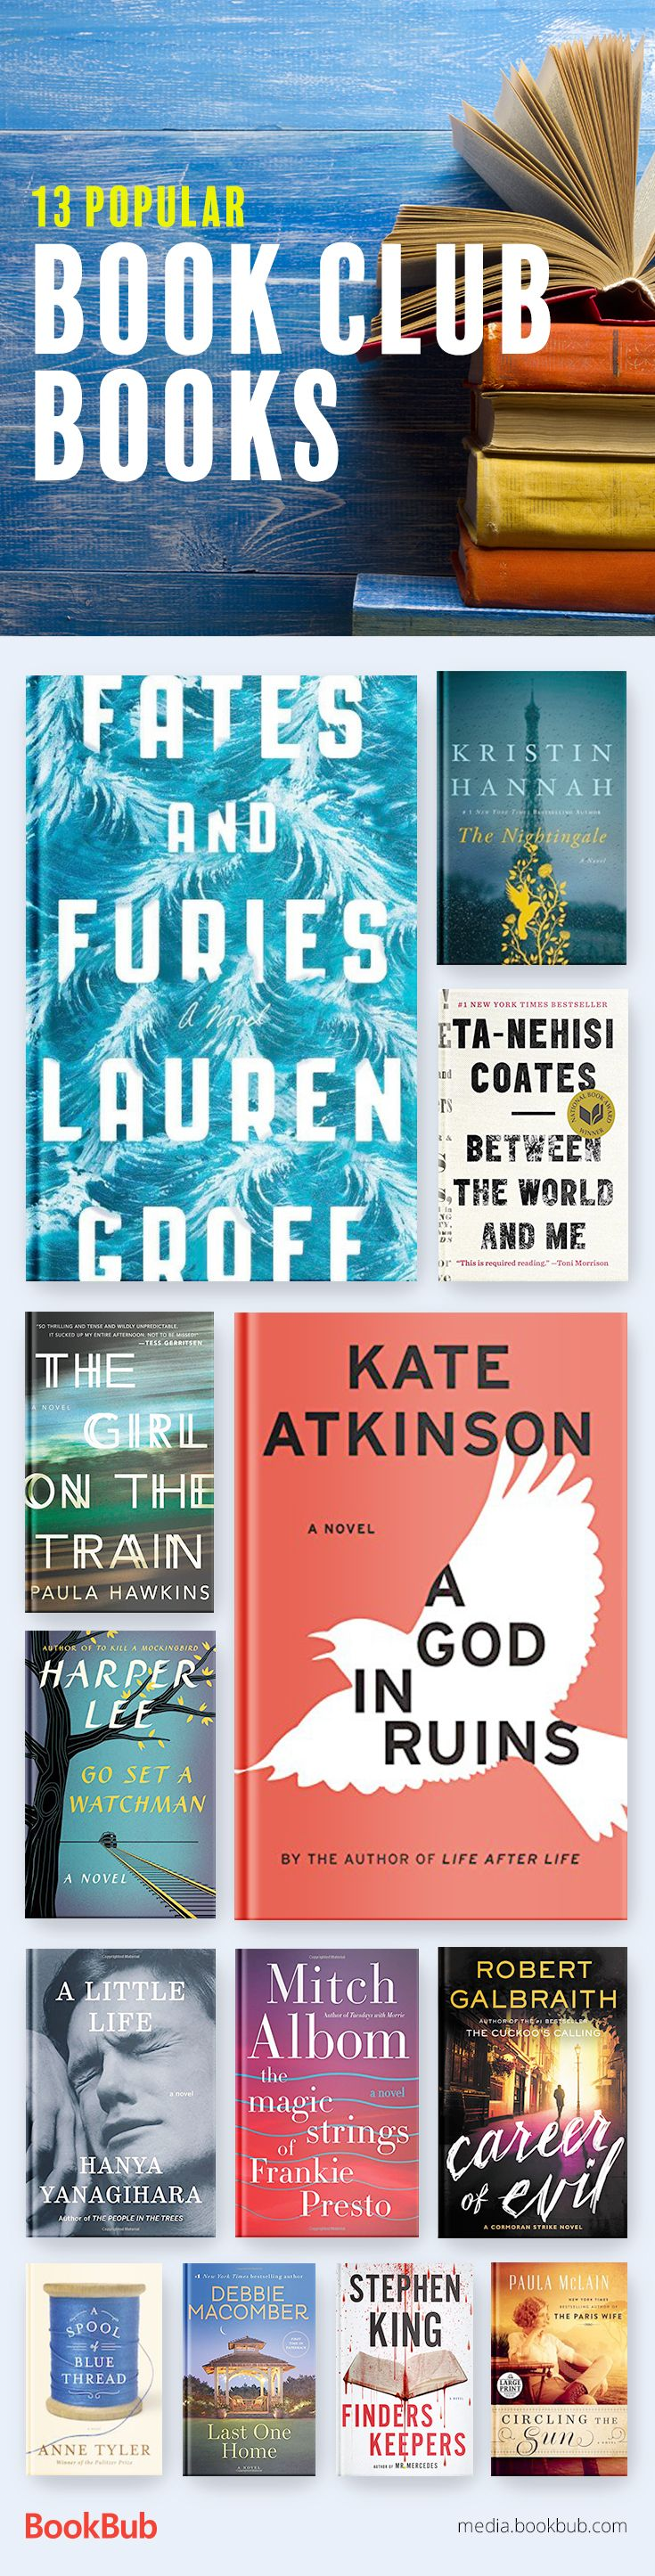 13 Book Club Book Ideas For Women, Including Some Of The Biggest Recent Book  Club